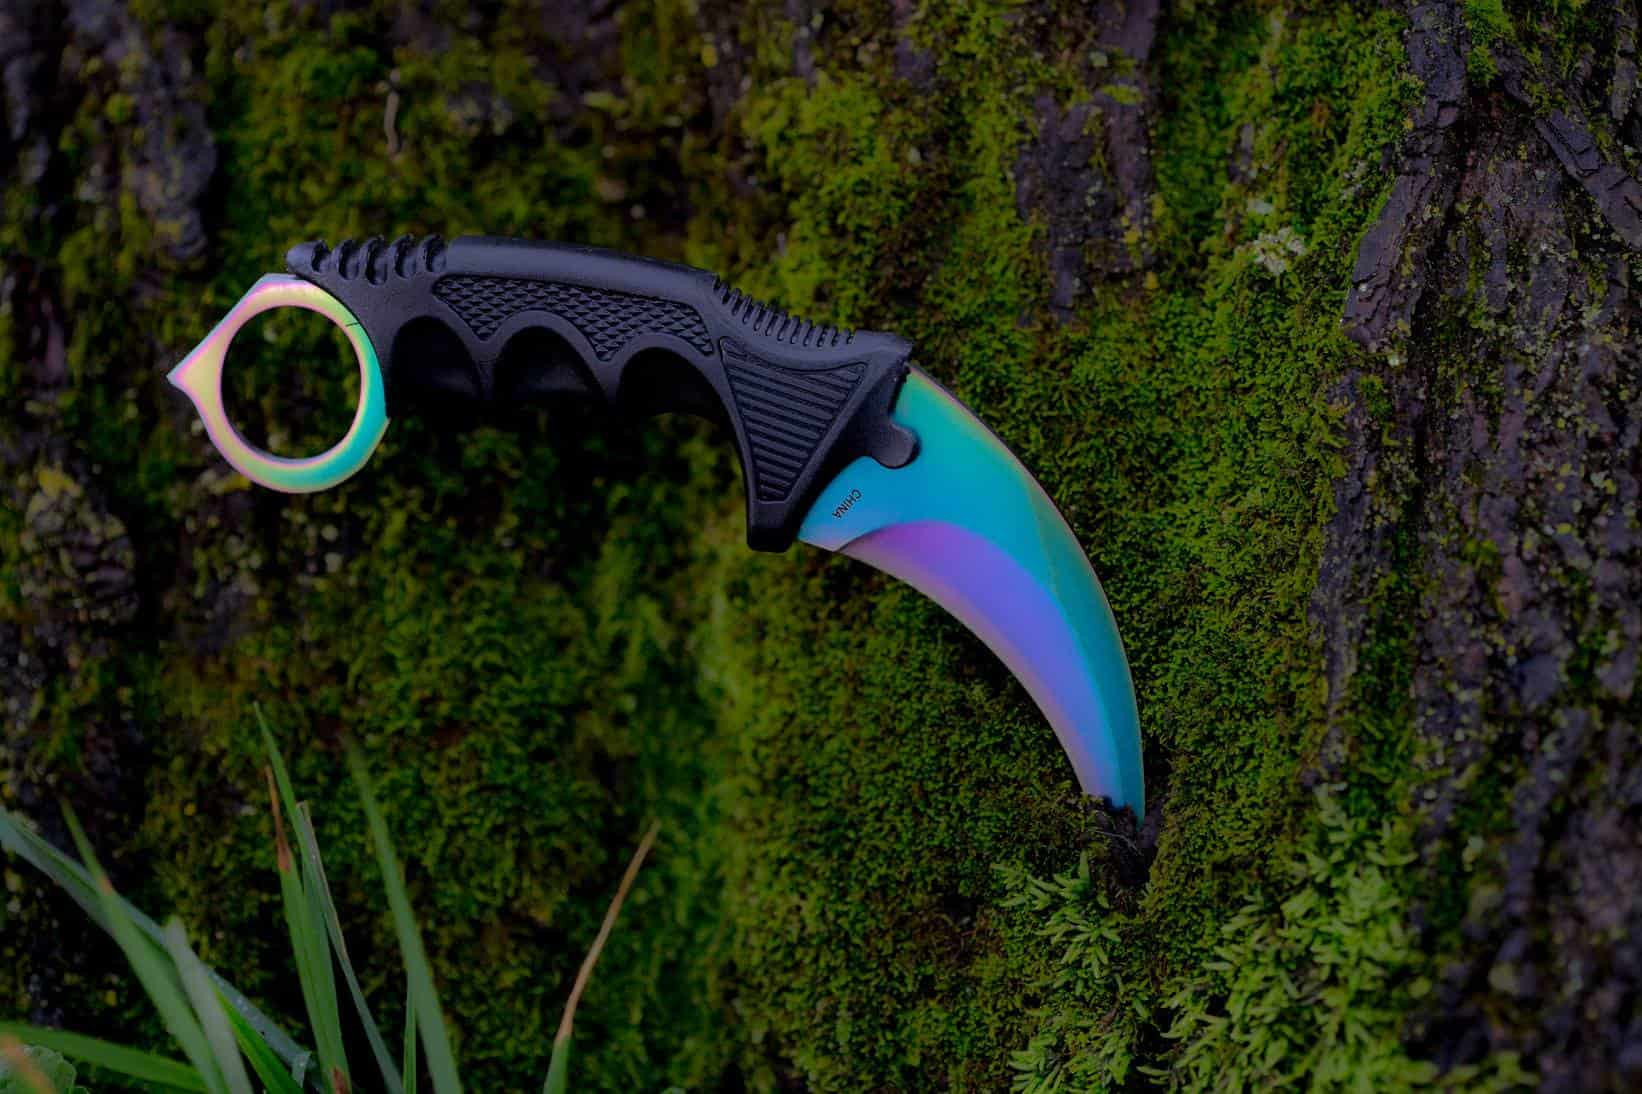 karambit-knife